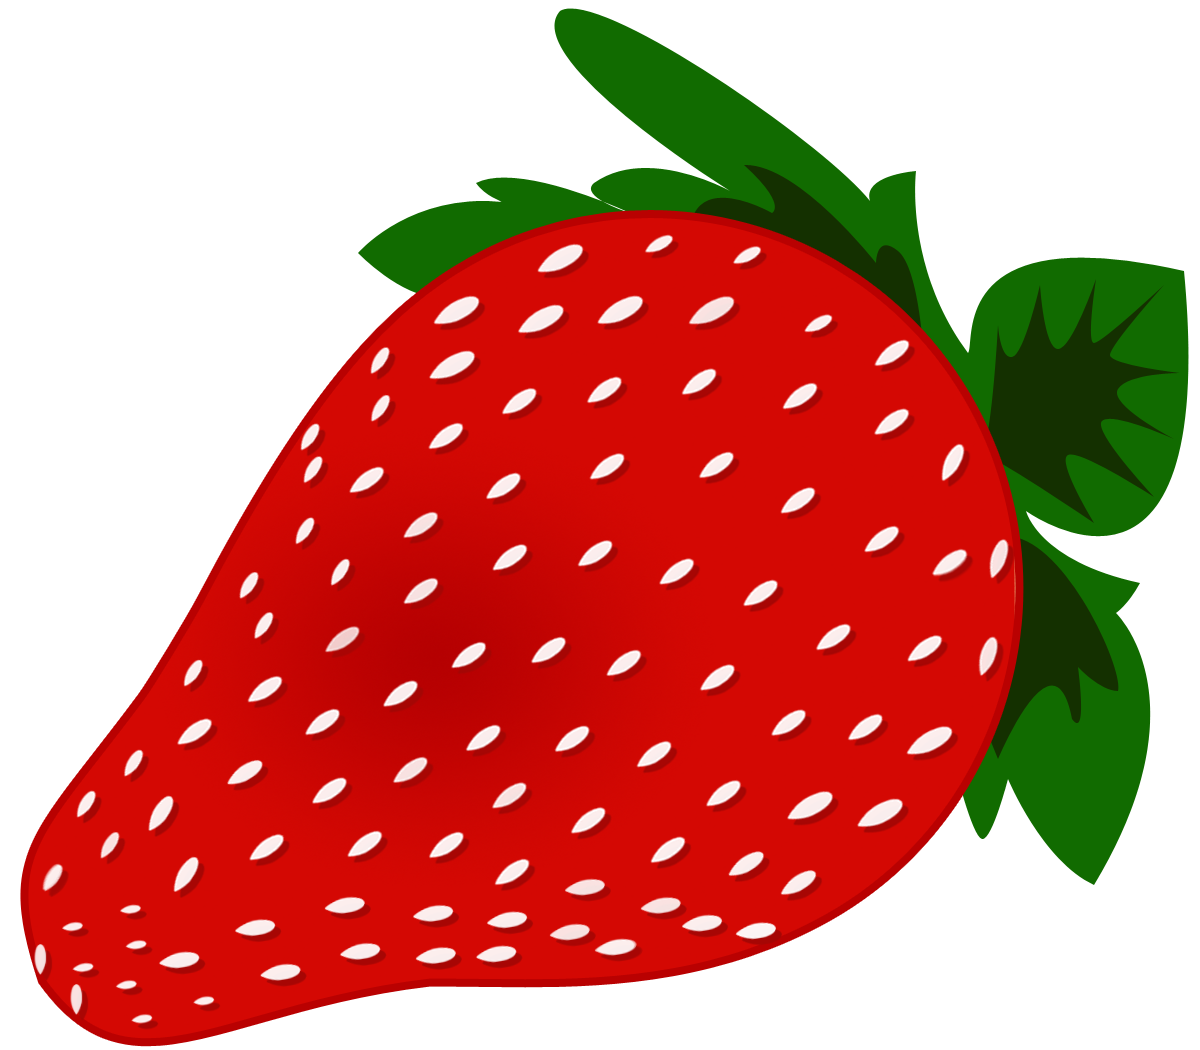 Free strawberry clipart image download Free Strawberries Cliparts, Download Free Clip Art, Free Clip Art on ... image download